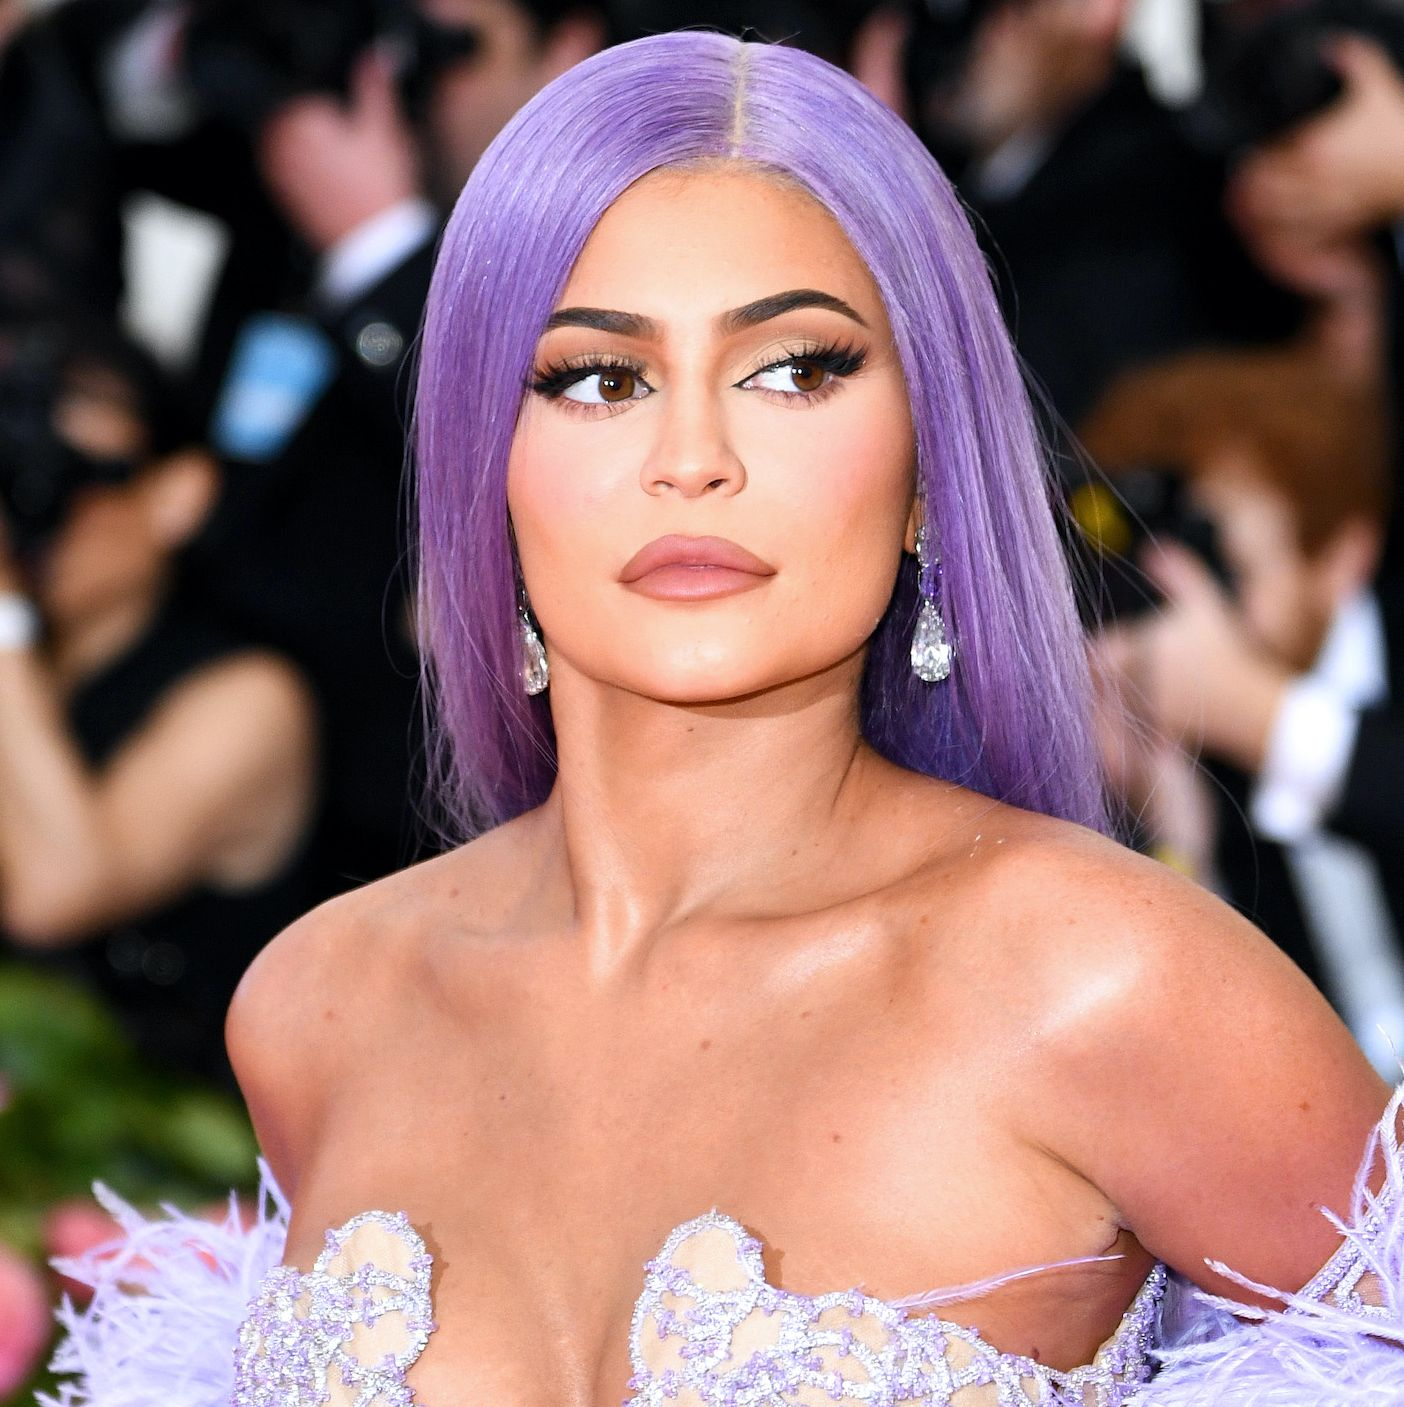 Kylie Jenner A huge fan of wigs, Jenner debuted a straight purple 'do to match her lavender ensemble. Her face beat was classic glam, with her signature matte brown-nude lip.